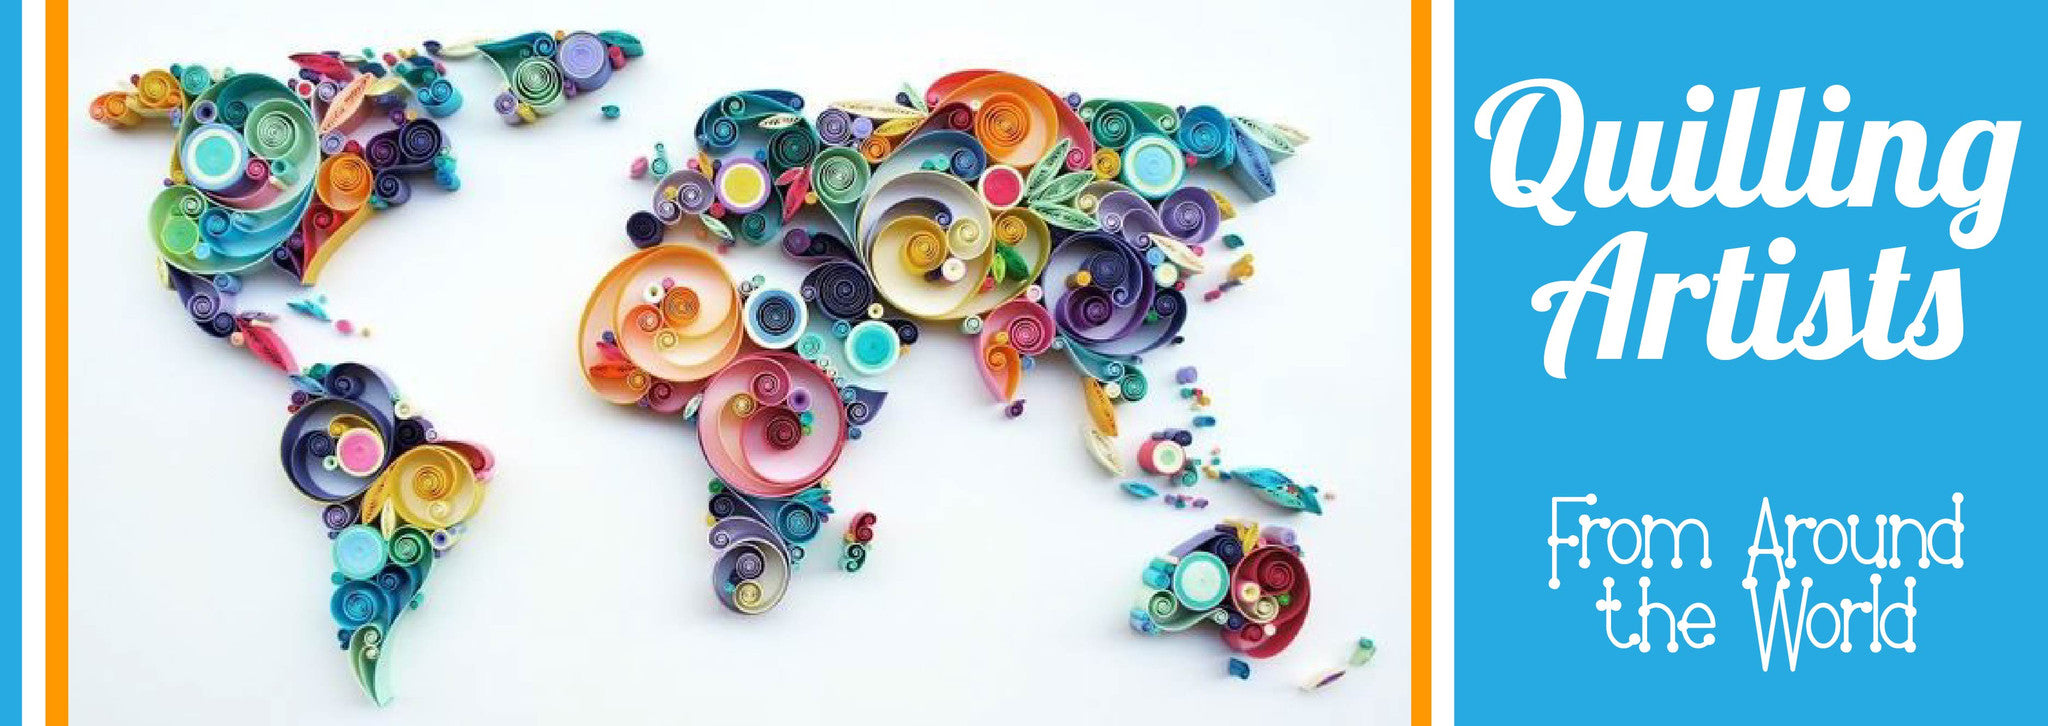 Quilling Artists